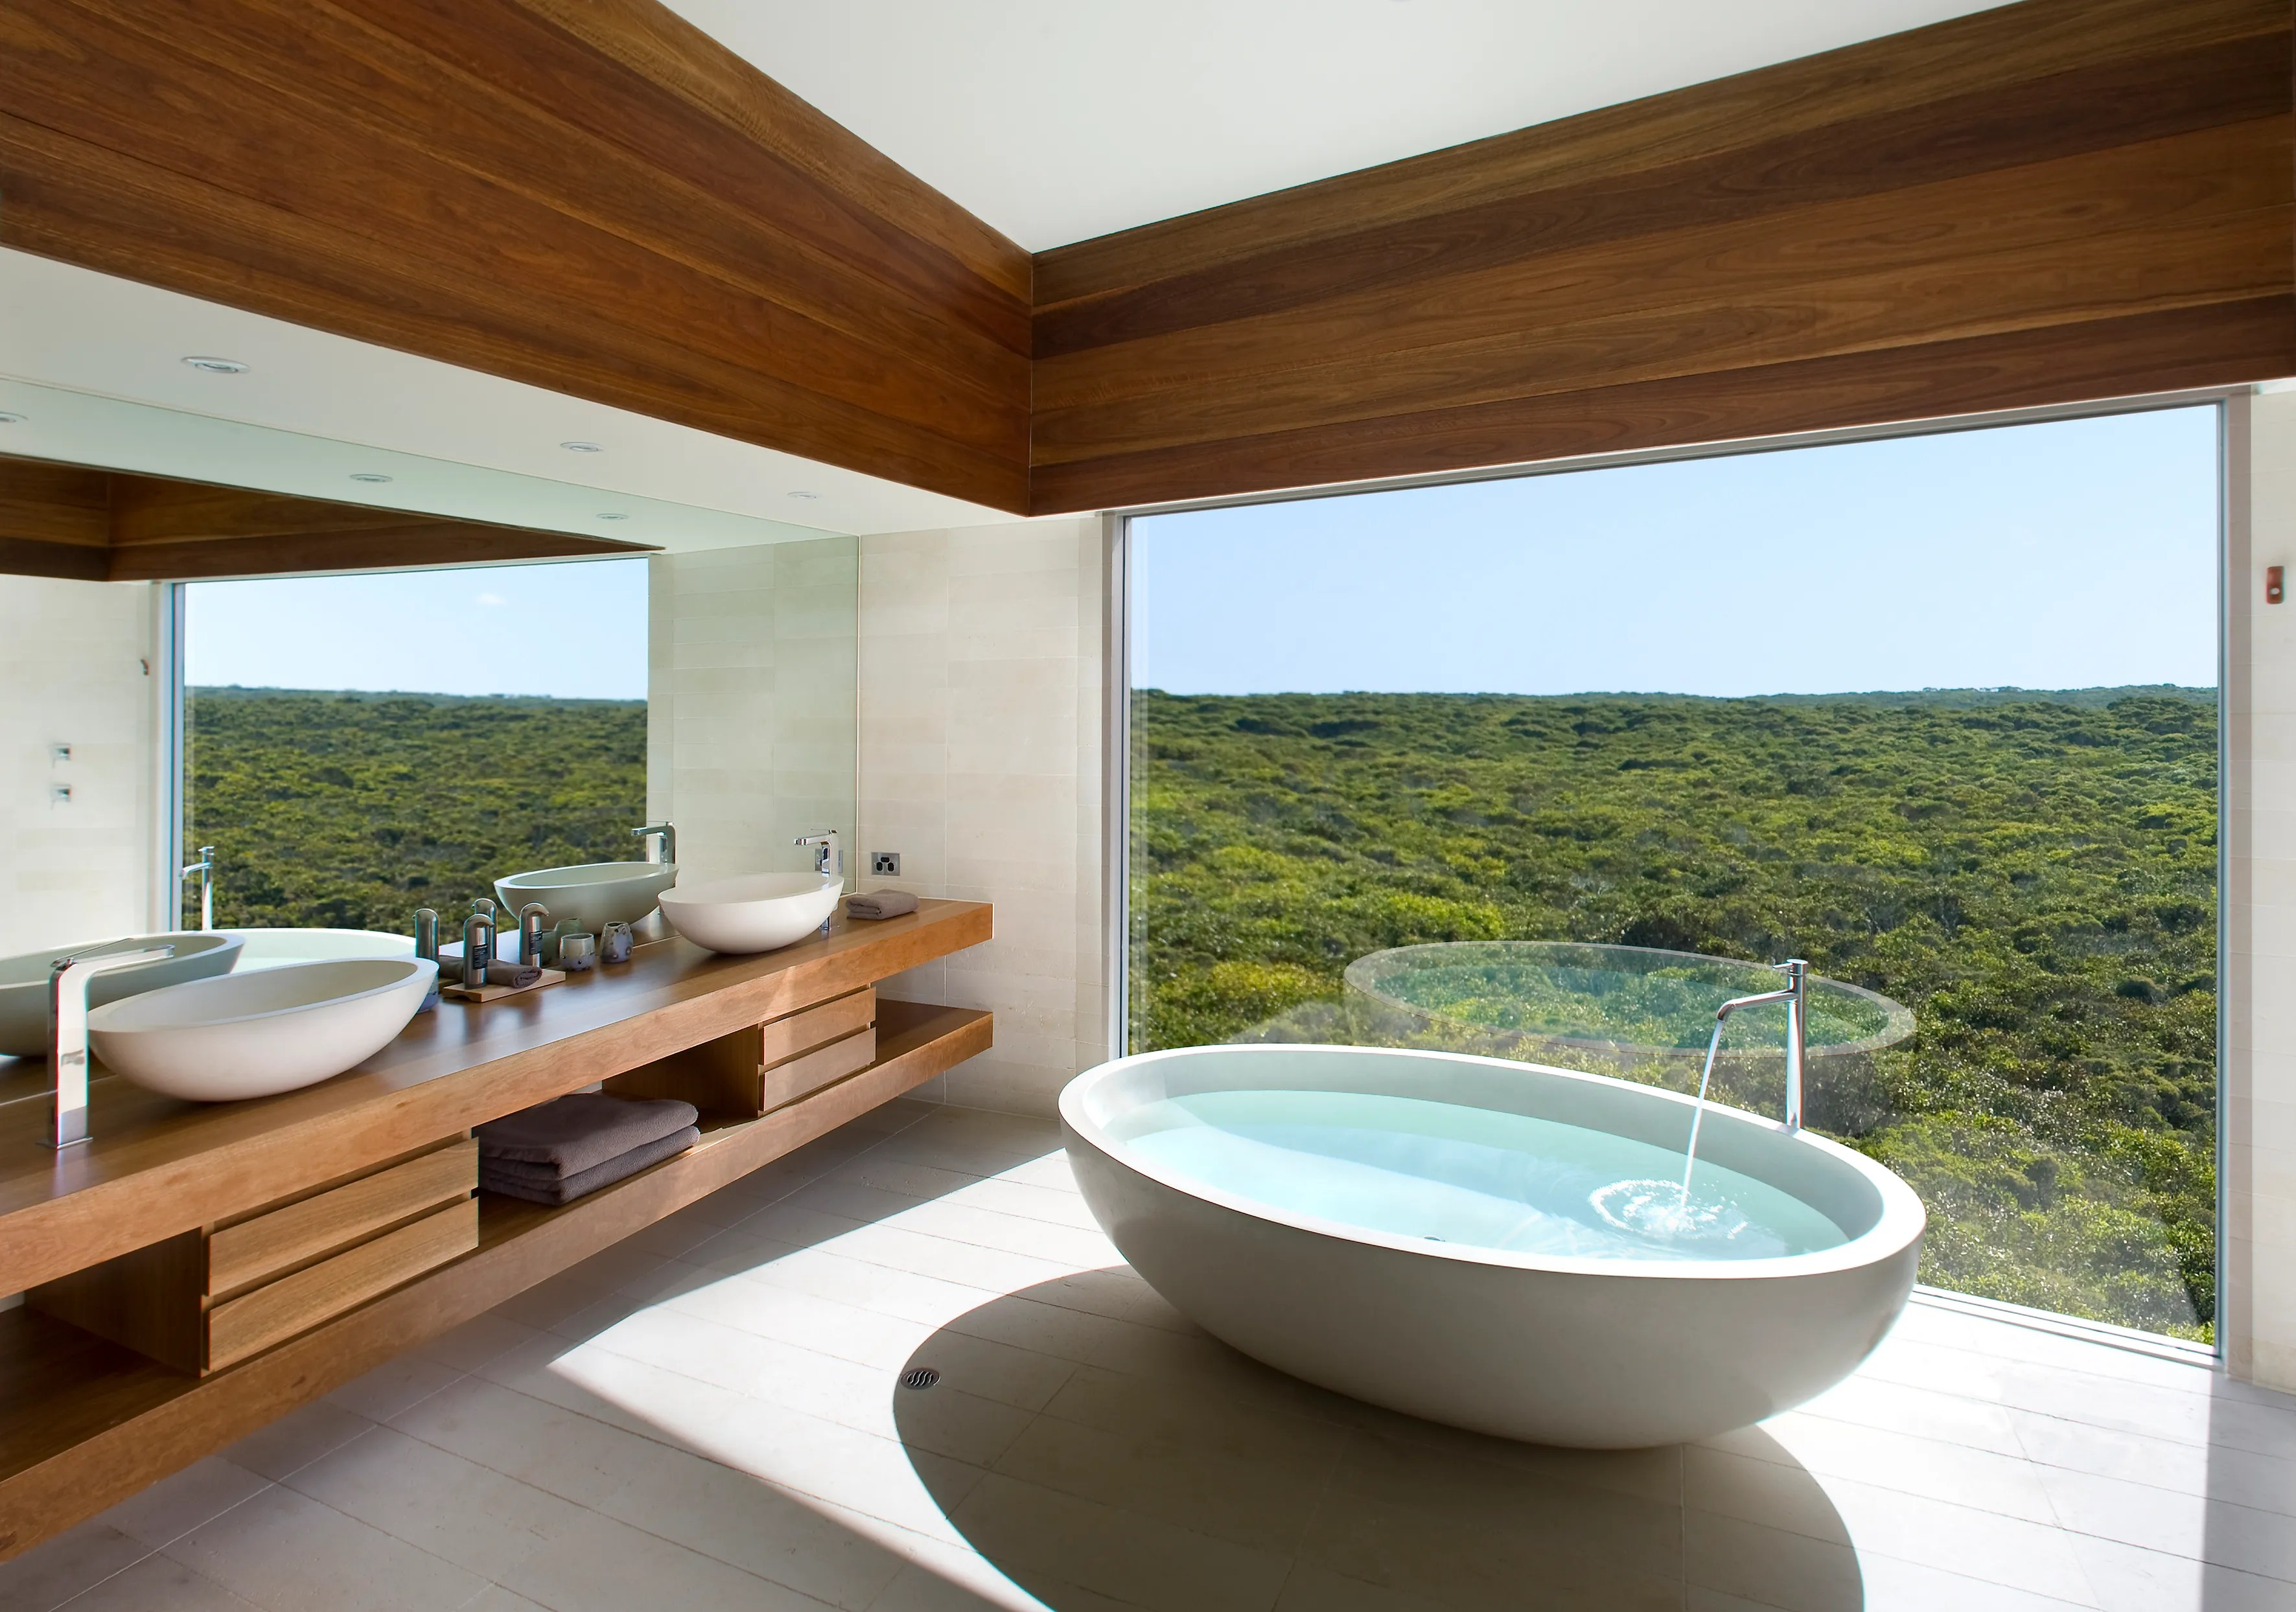 The World's Most Beautiful Hotel Bathrooms Photos